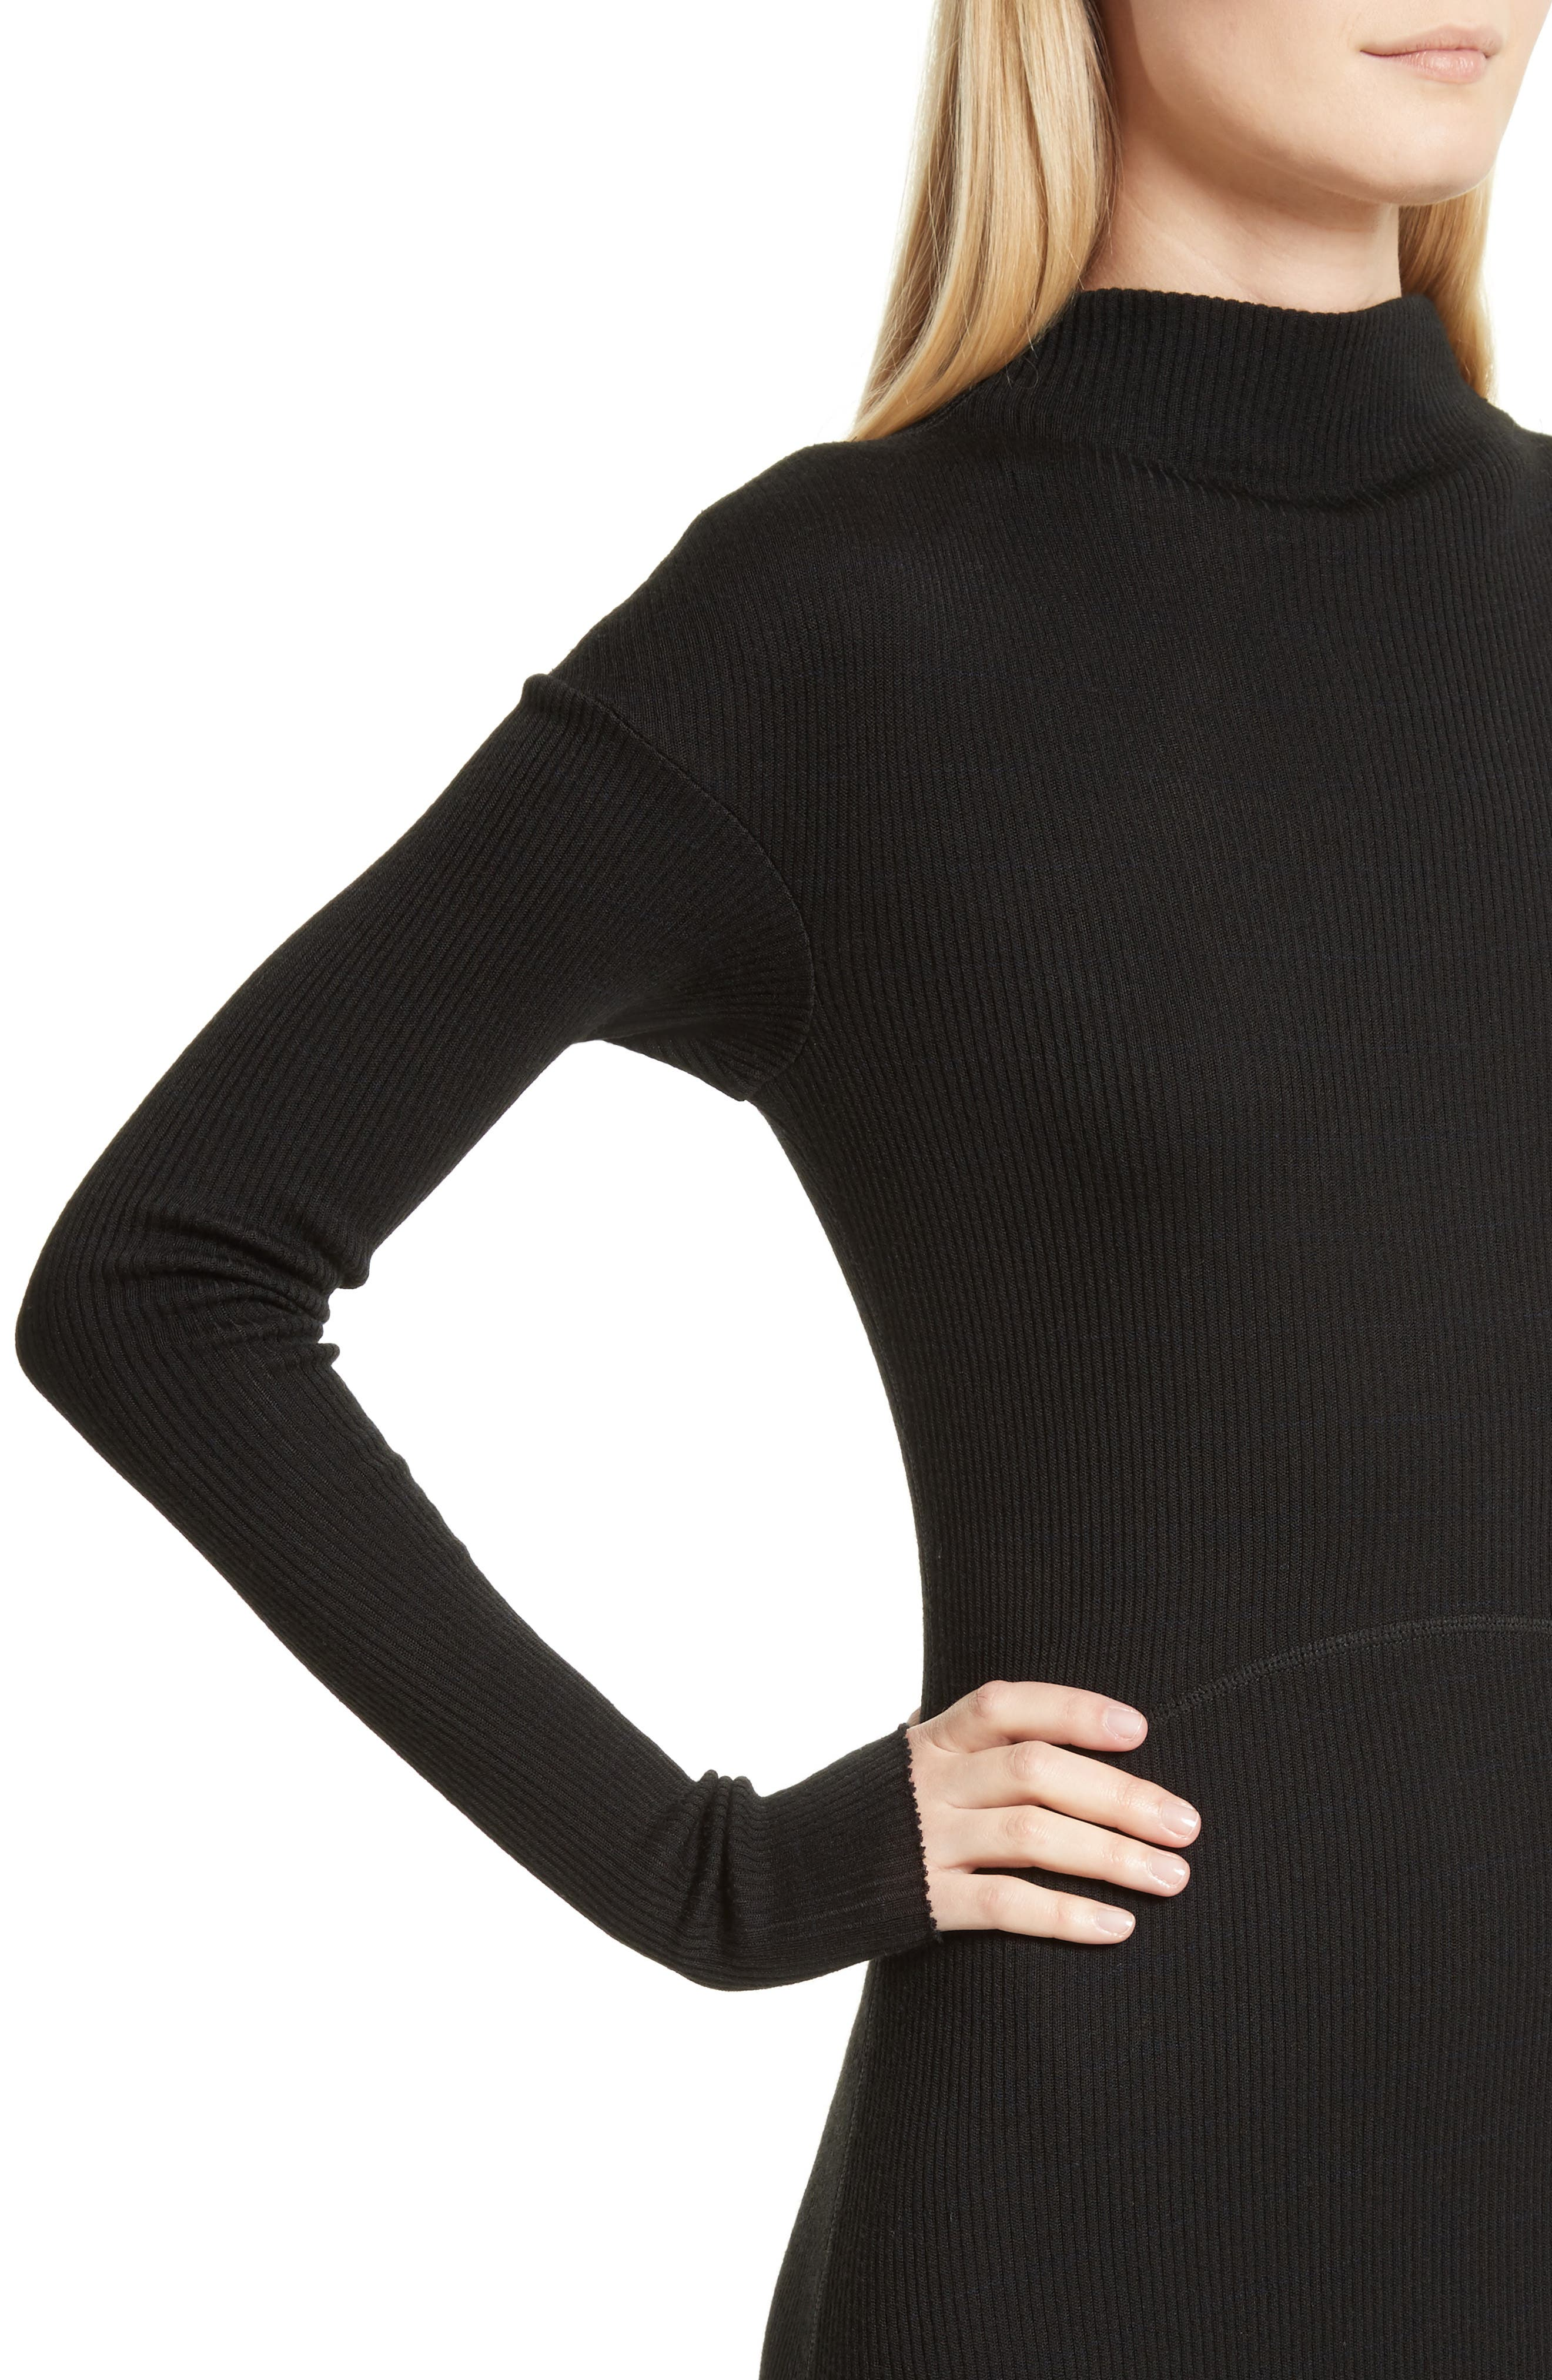 Ribbed Sweater Dress,                             Alternate thumbnail 4, color,                             Black